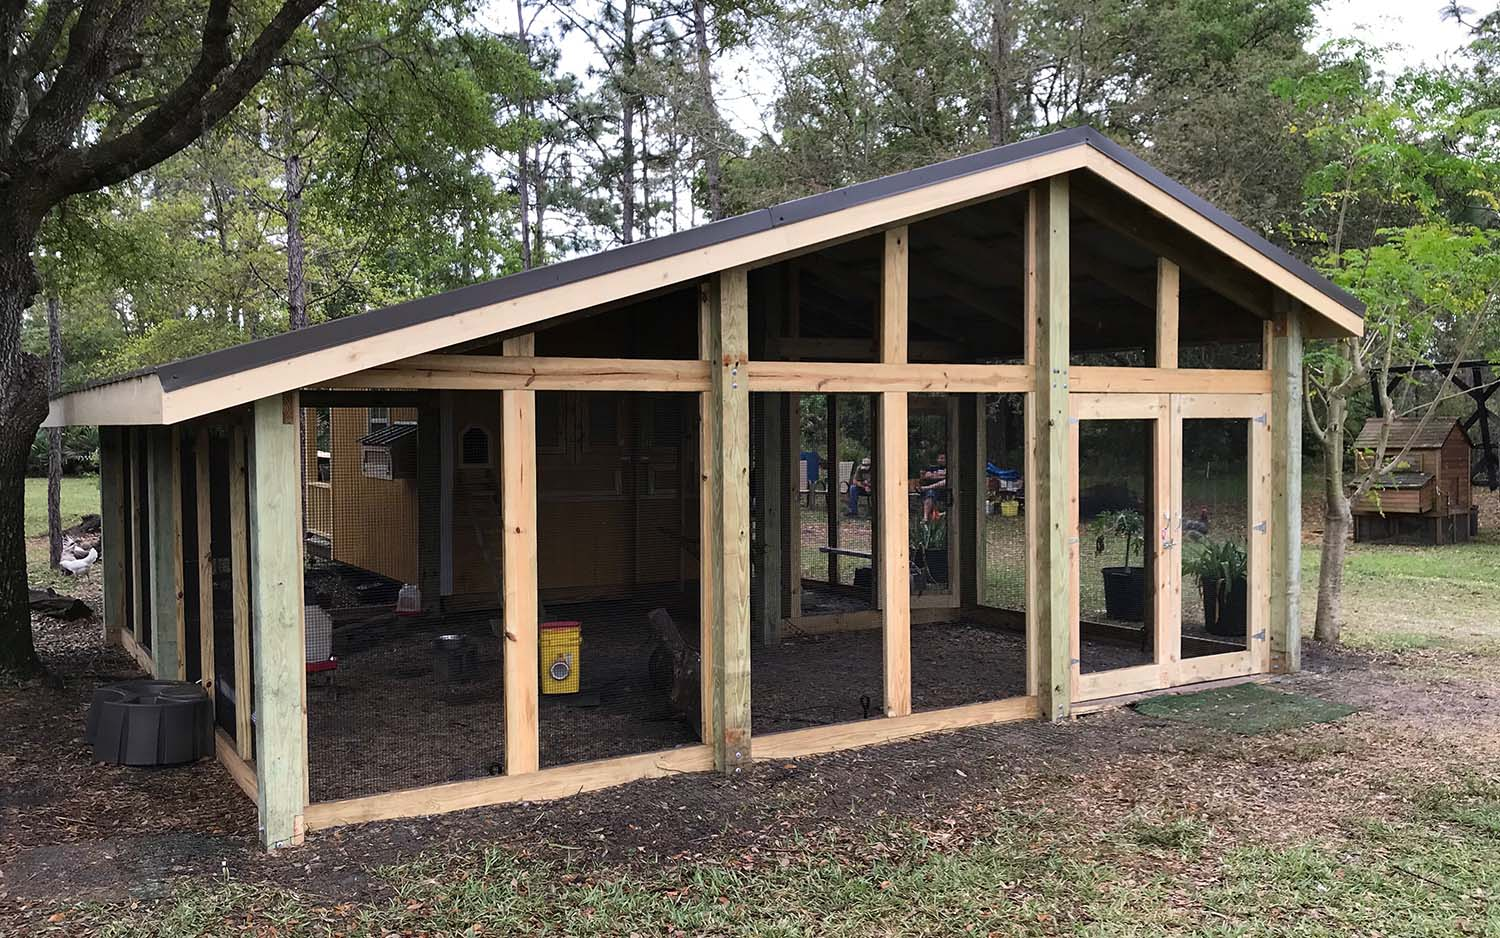 Large custom chicken run built onto converted shed in Orlando, Florida